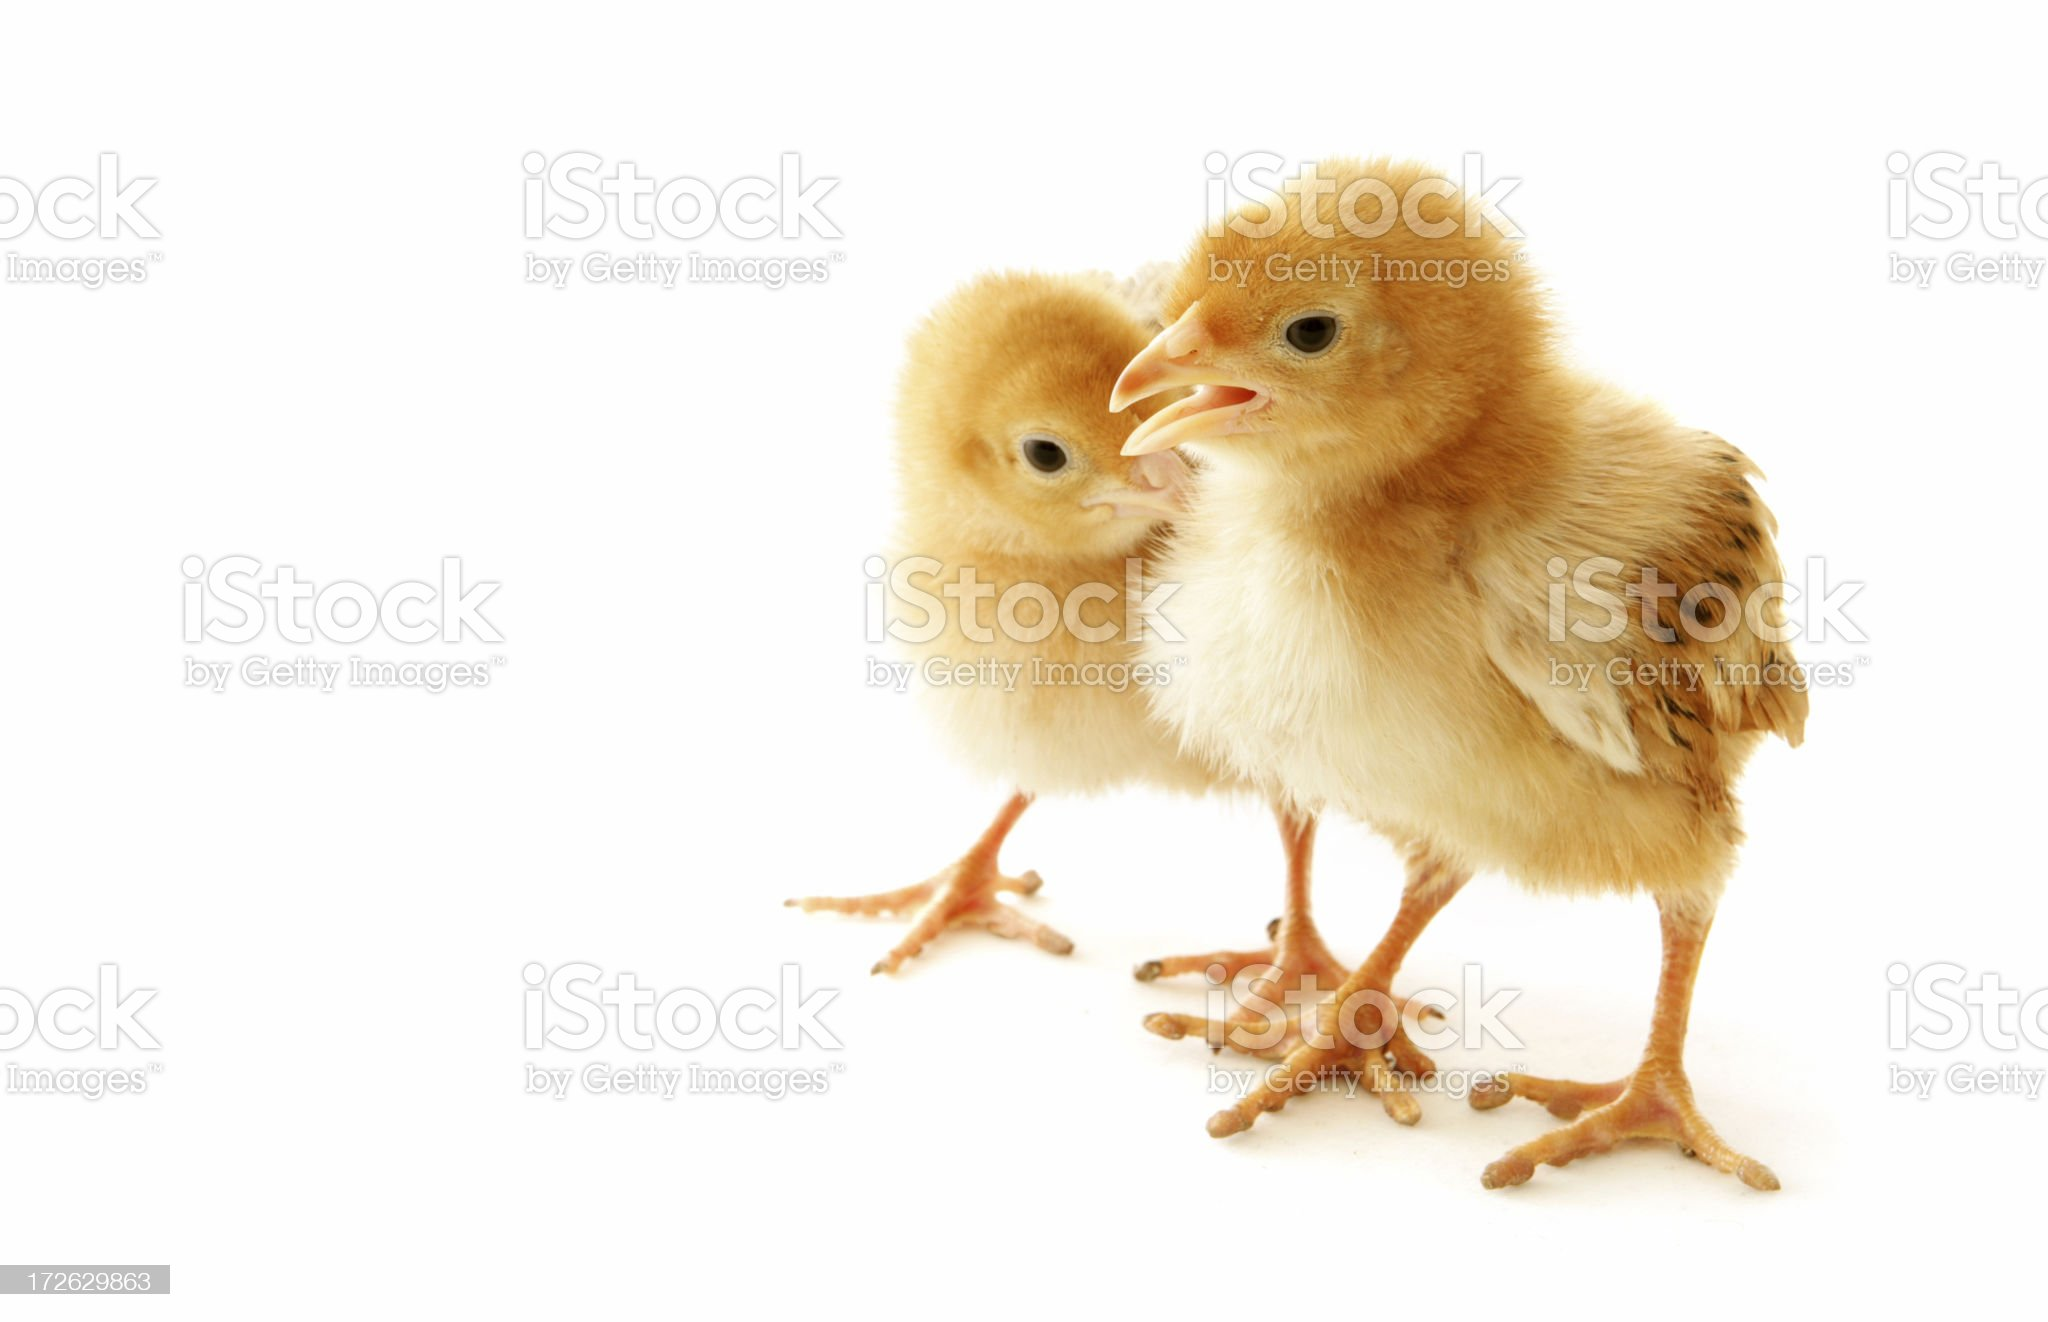 Pair of Fluffy Chickens royalty-free stock photo